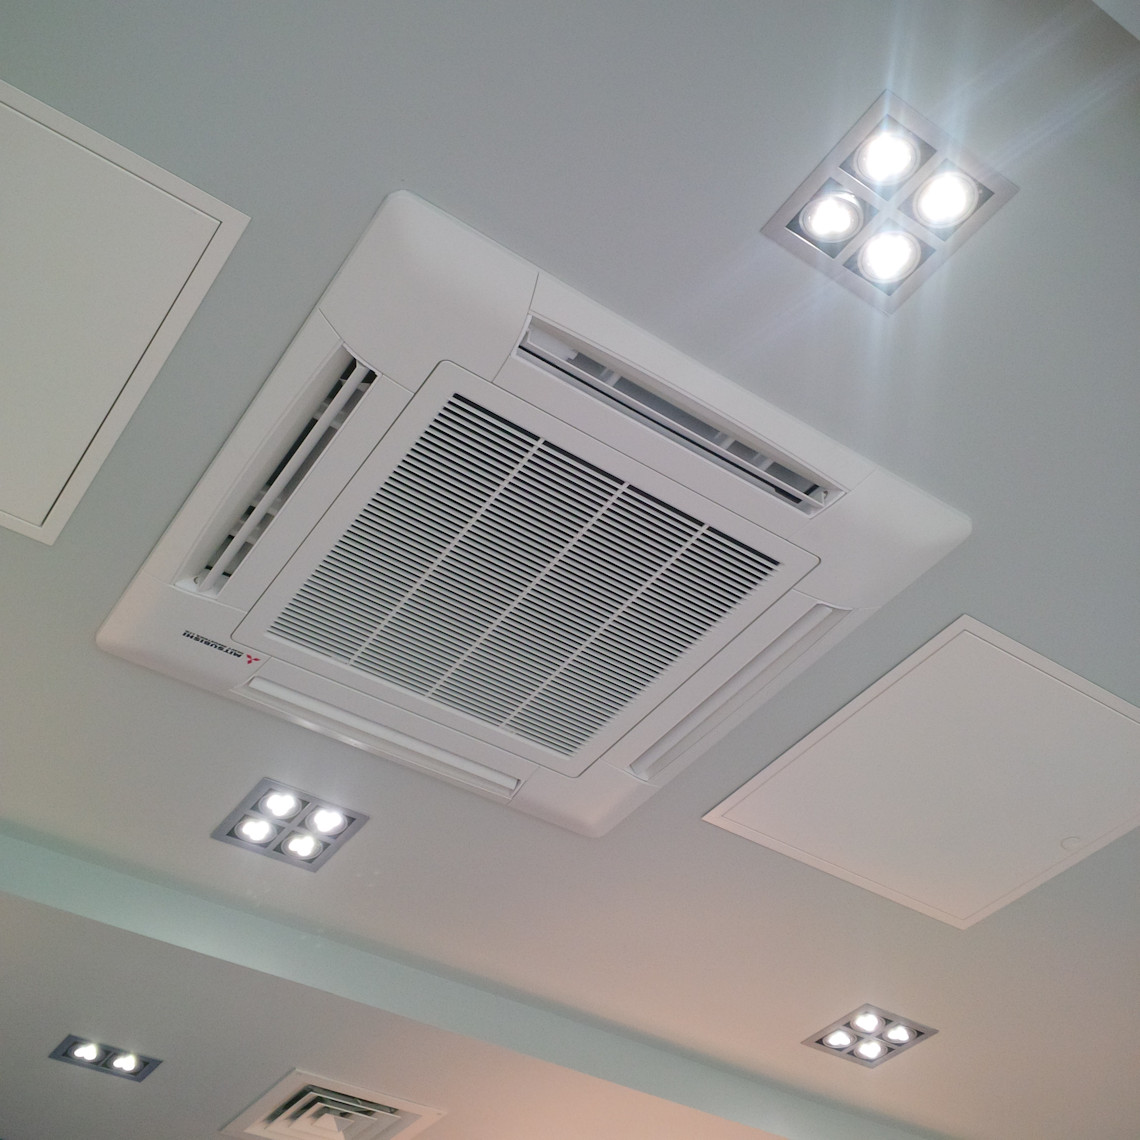 Image Result For Air Conditioner Repair Near Me